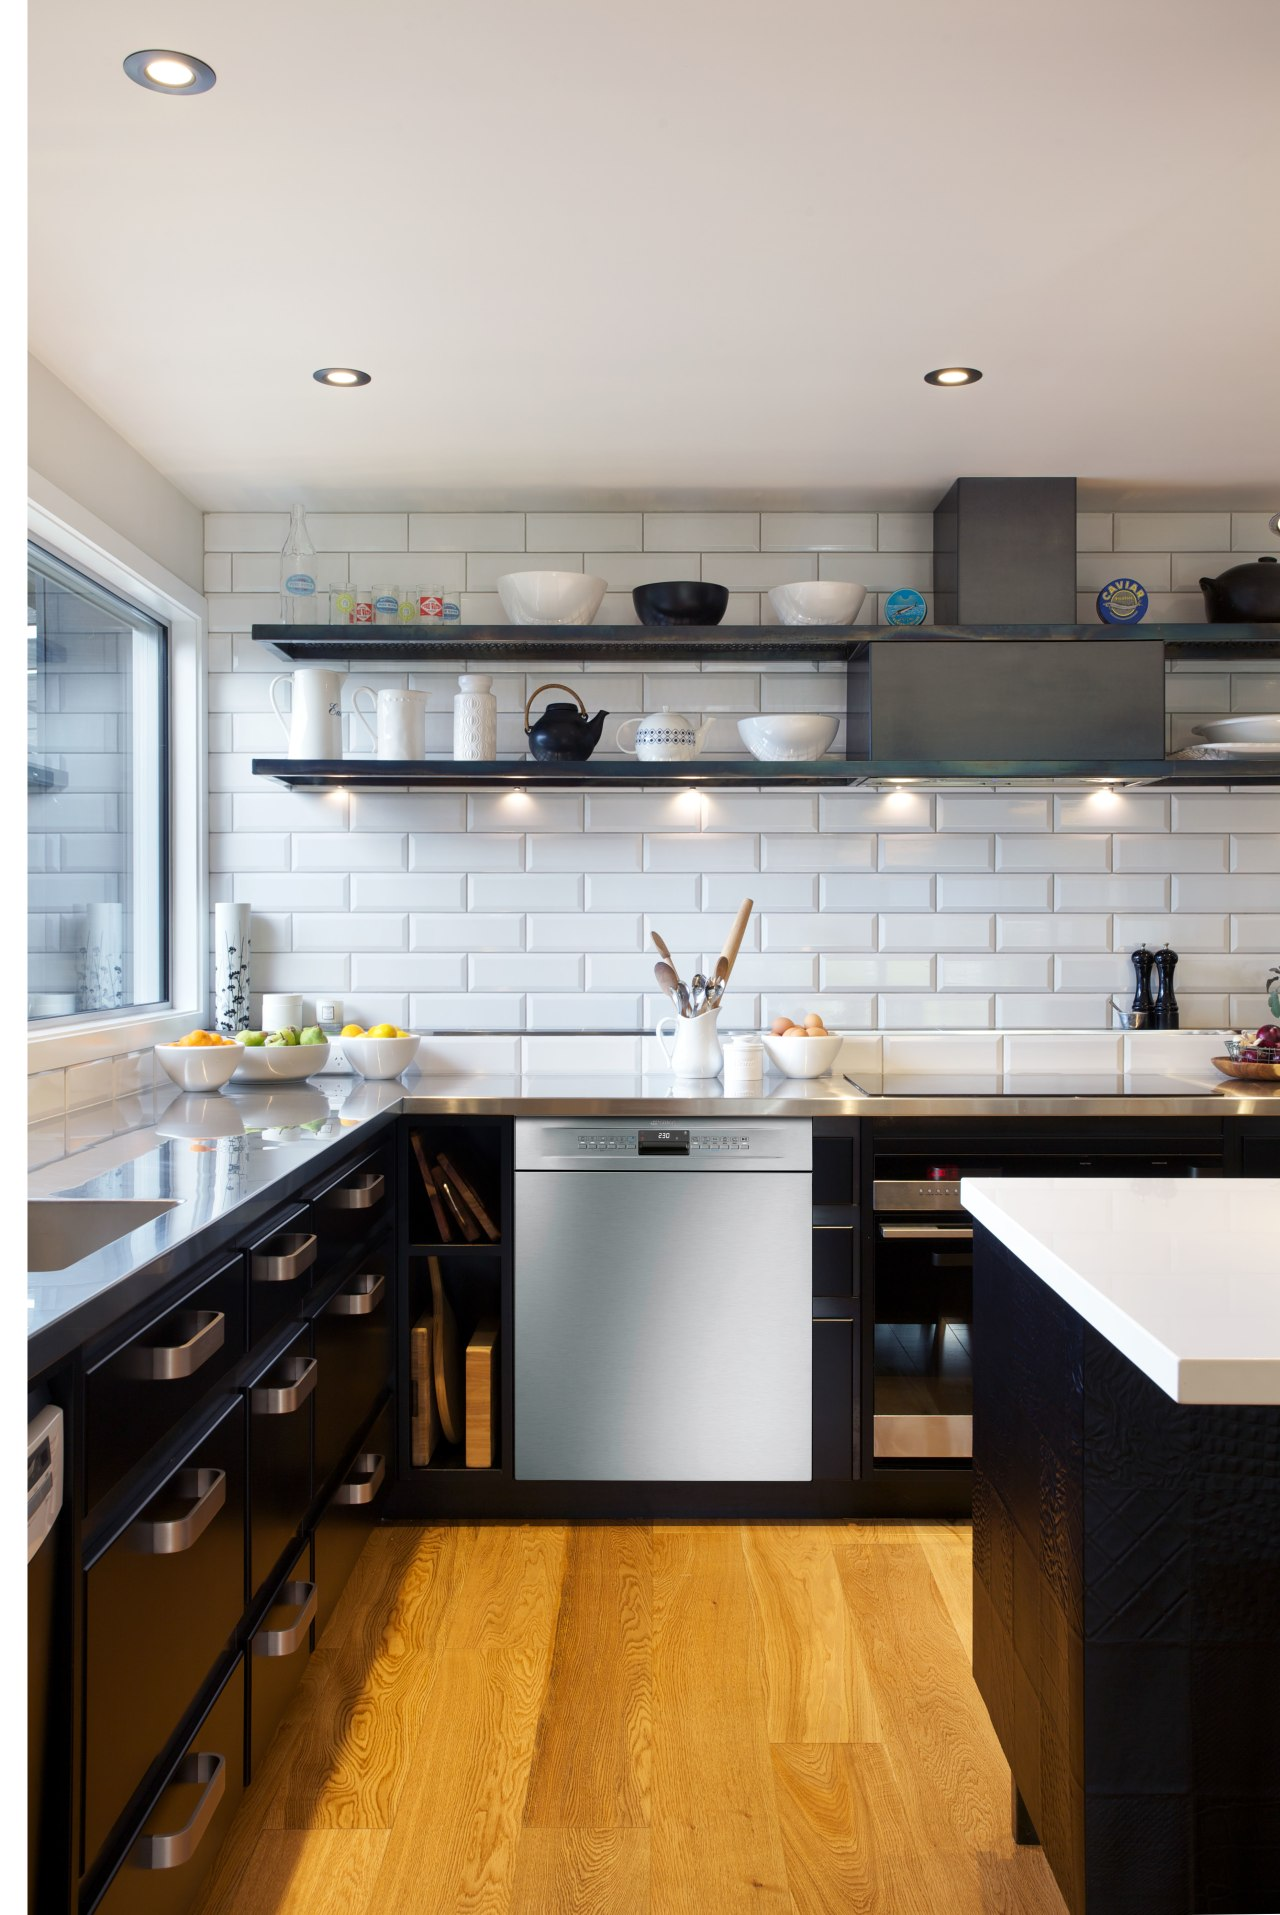 A next-level dishwasher from Smeg features in this cabinetry, countertop, cuisine classique, floor, hardwood, interior design, kitchen, room, gray